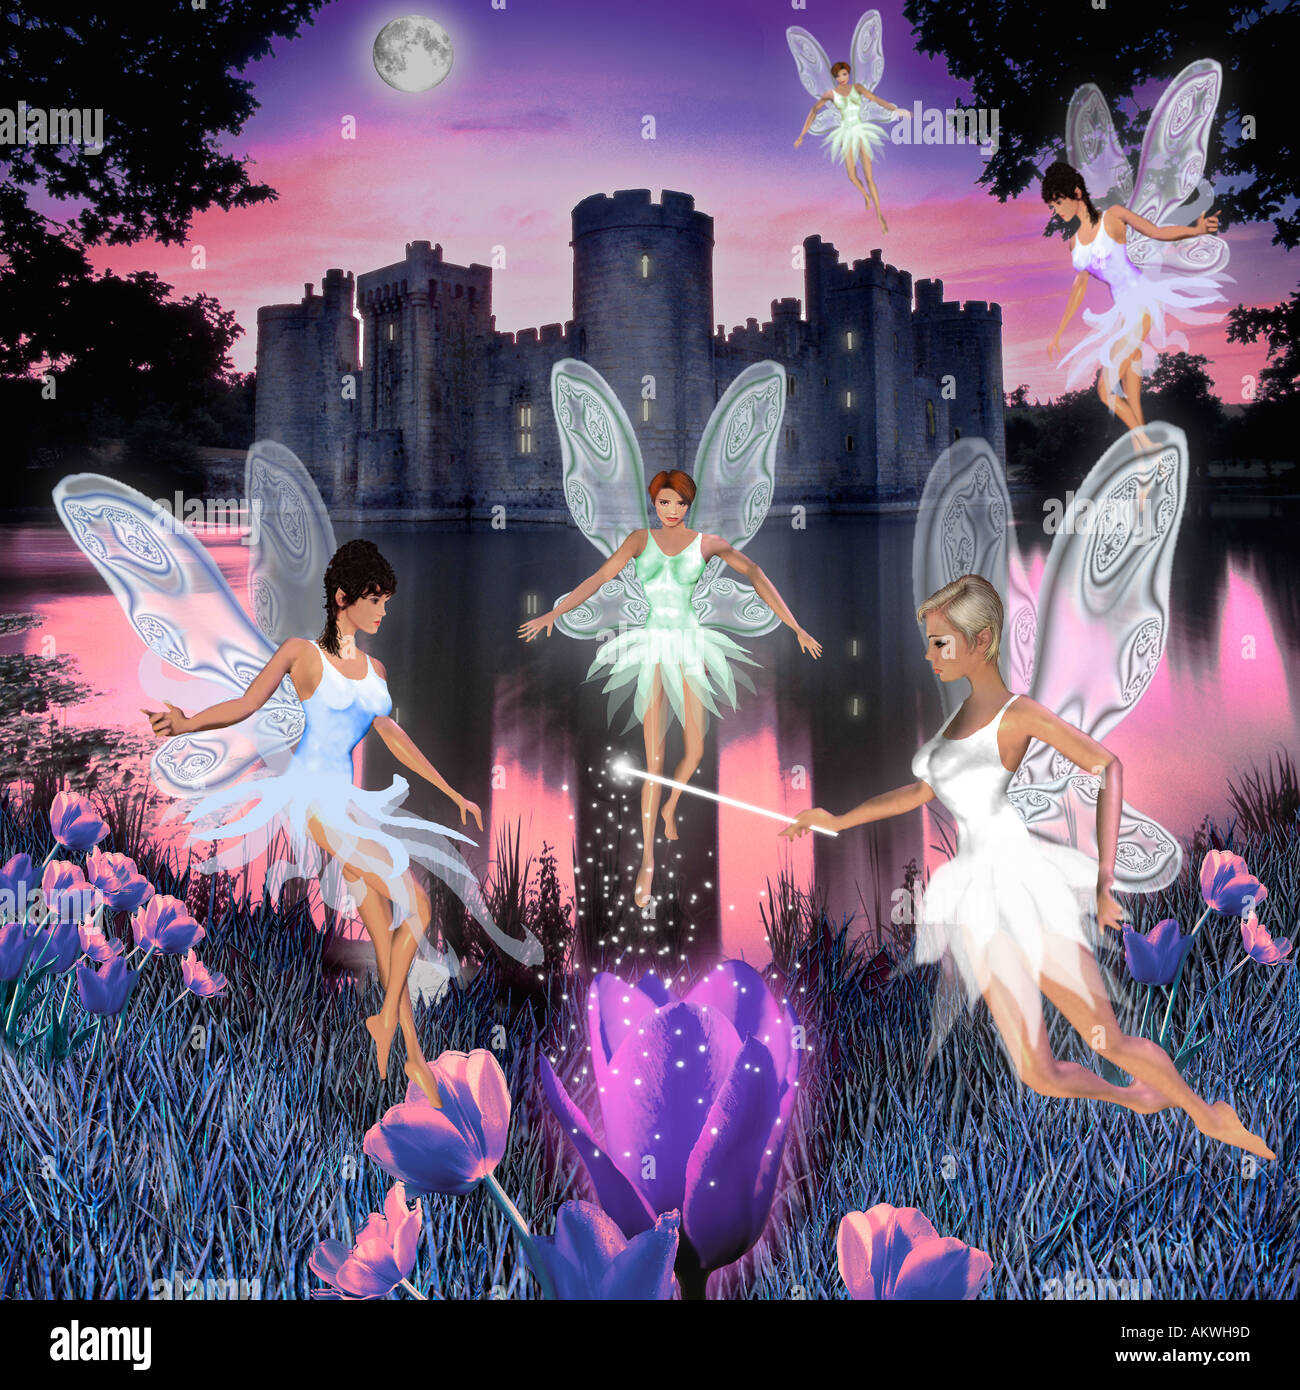 fairies dancing hovering in air at night with castle behind twilight dusk purple blue - Stock Image